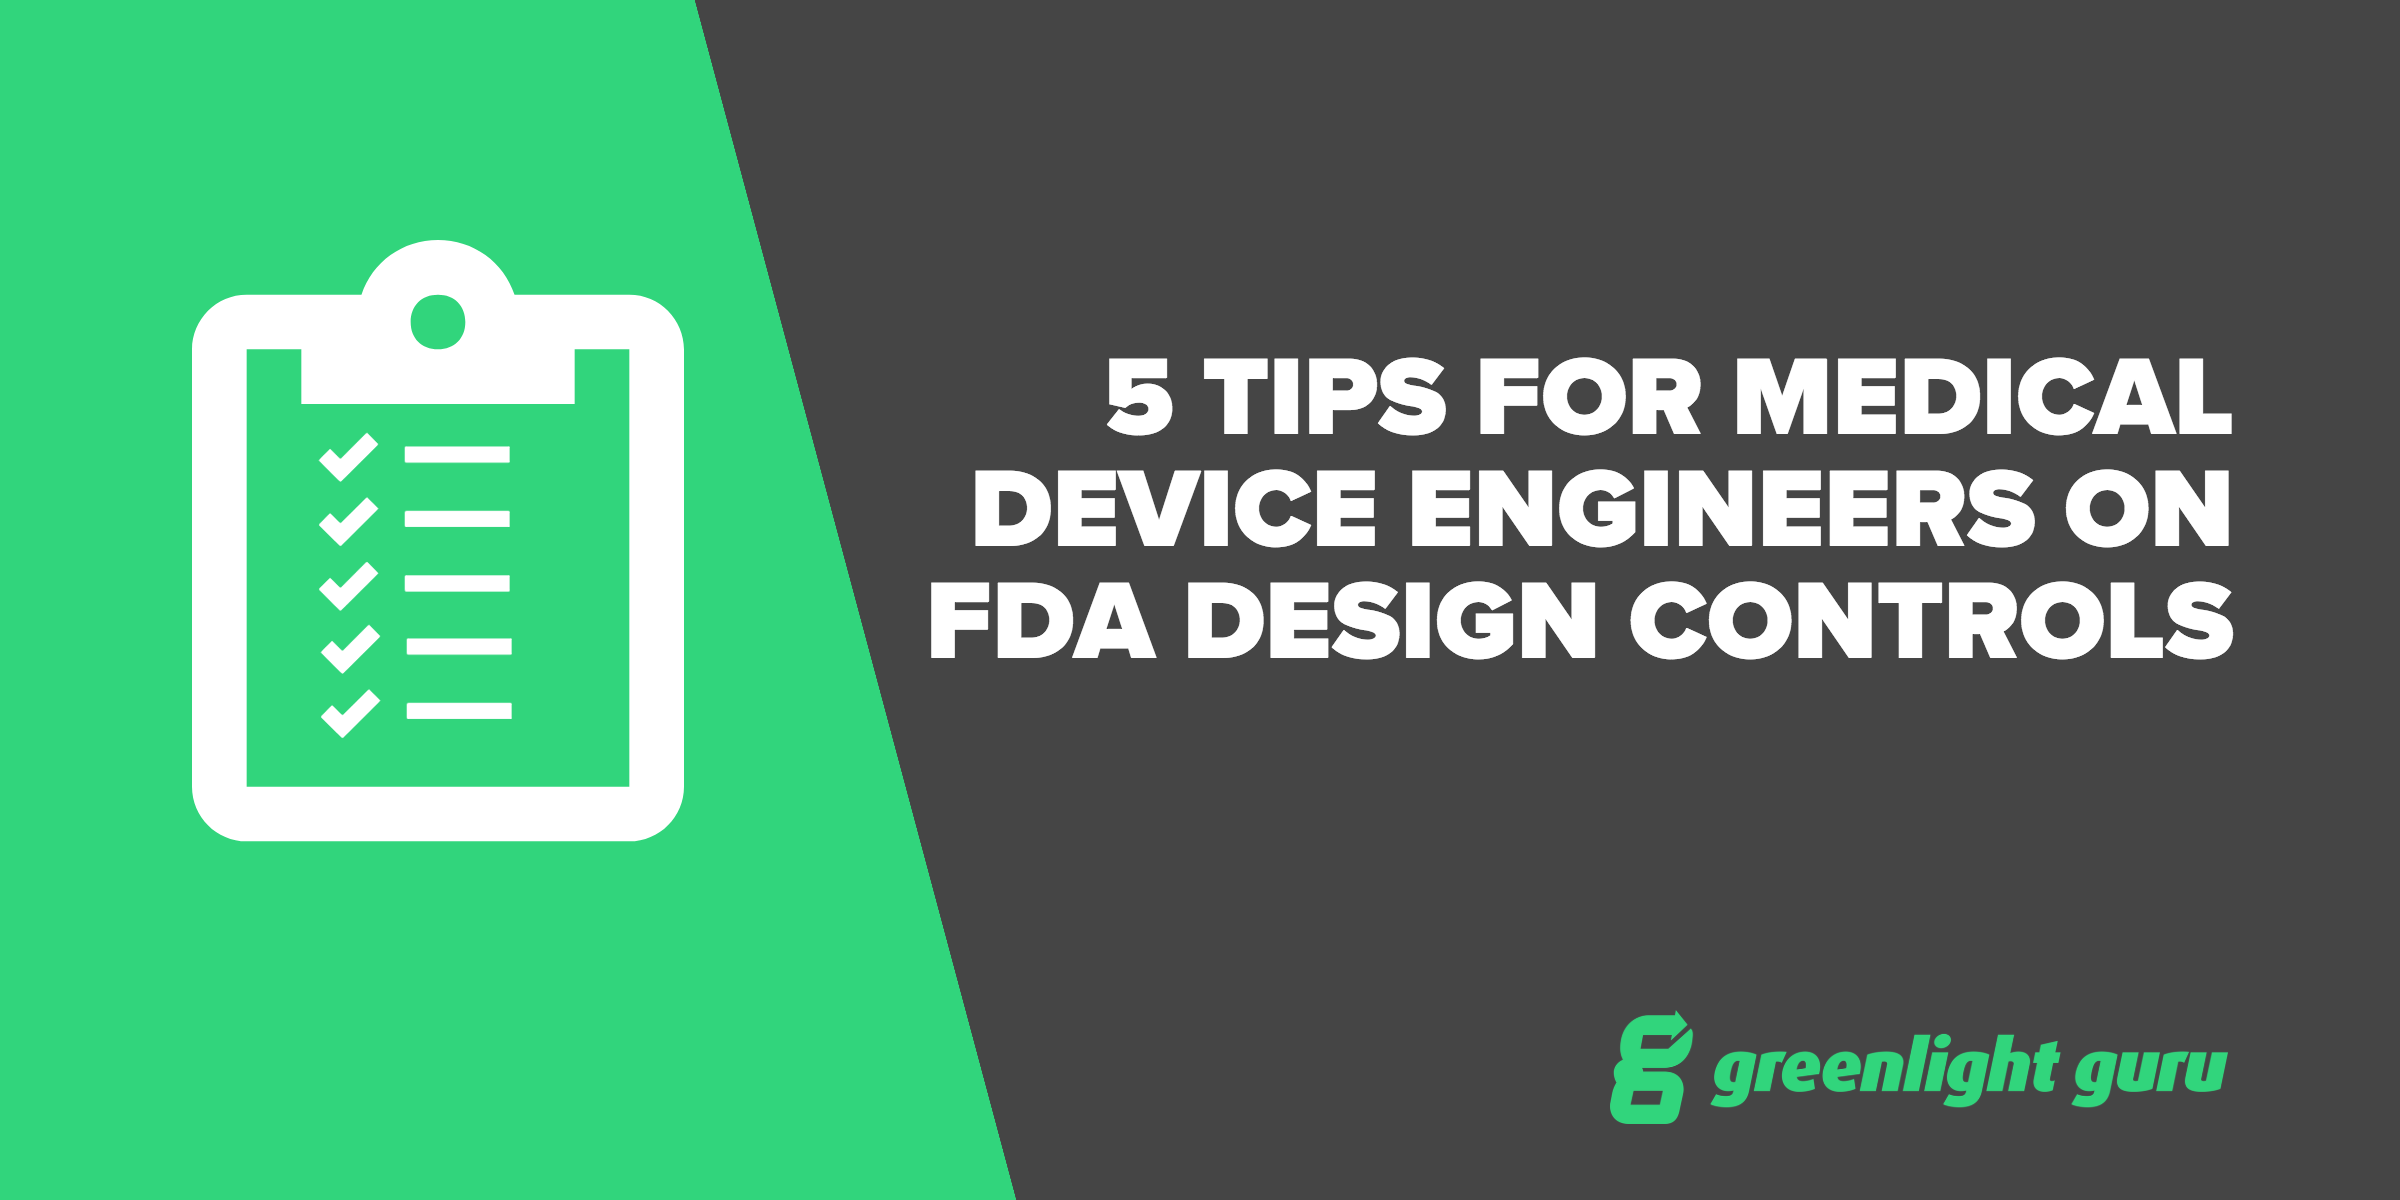 5 Tips for Medical Device Engineers on FDA Design Controls